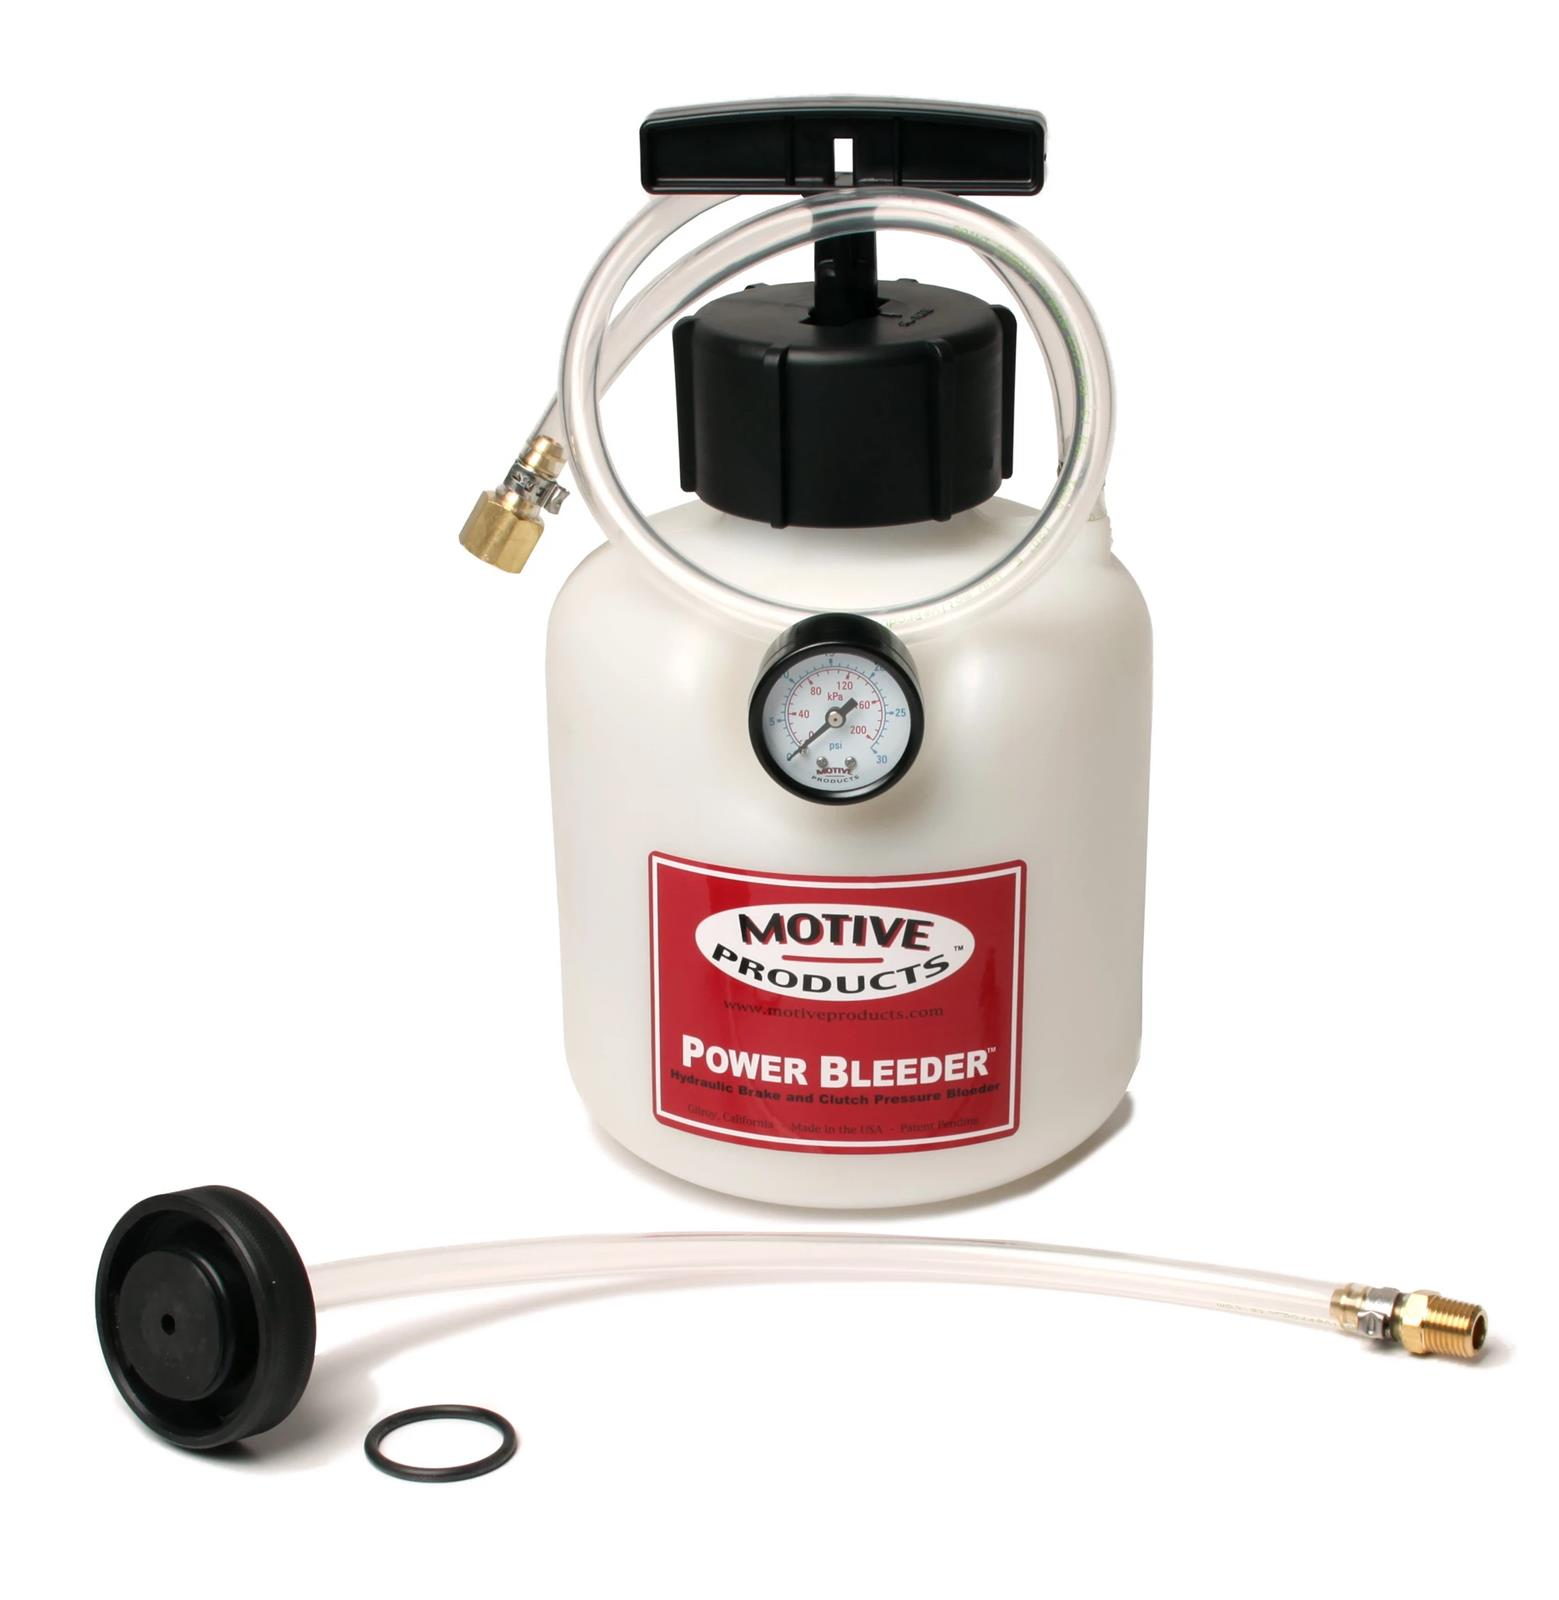 Motive Products Power Brake Bleeder 4 qt Capacity GM Ford Universal Attachments